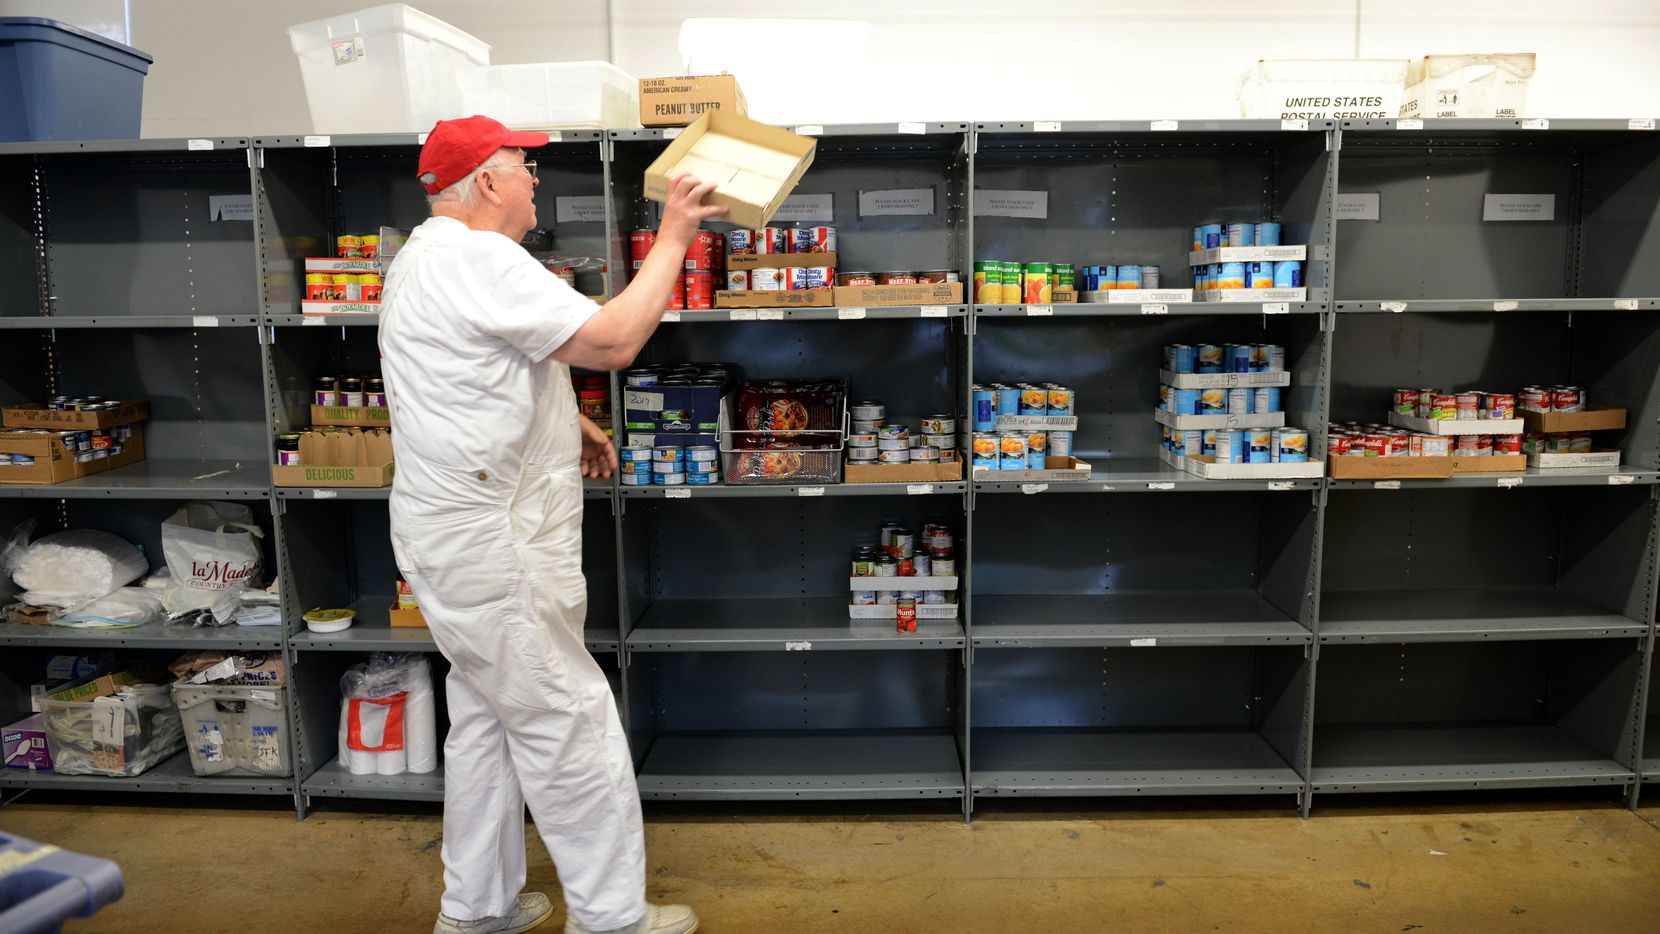 John Carpenter, a volunteer at the Irving Cares food pantry, restocks shelves in this 2013 file photo.